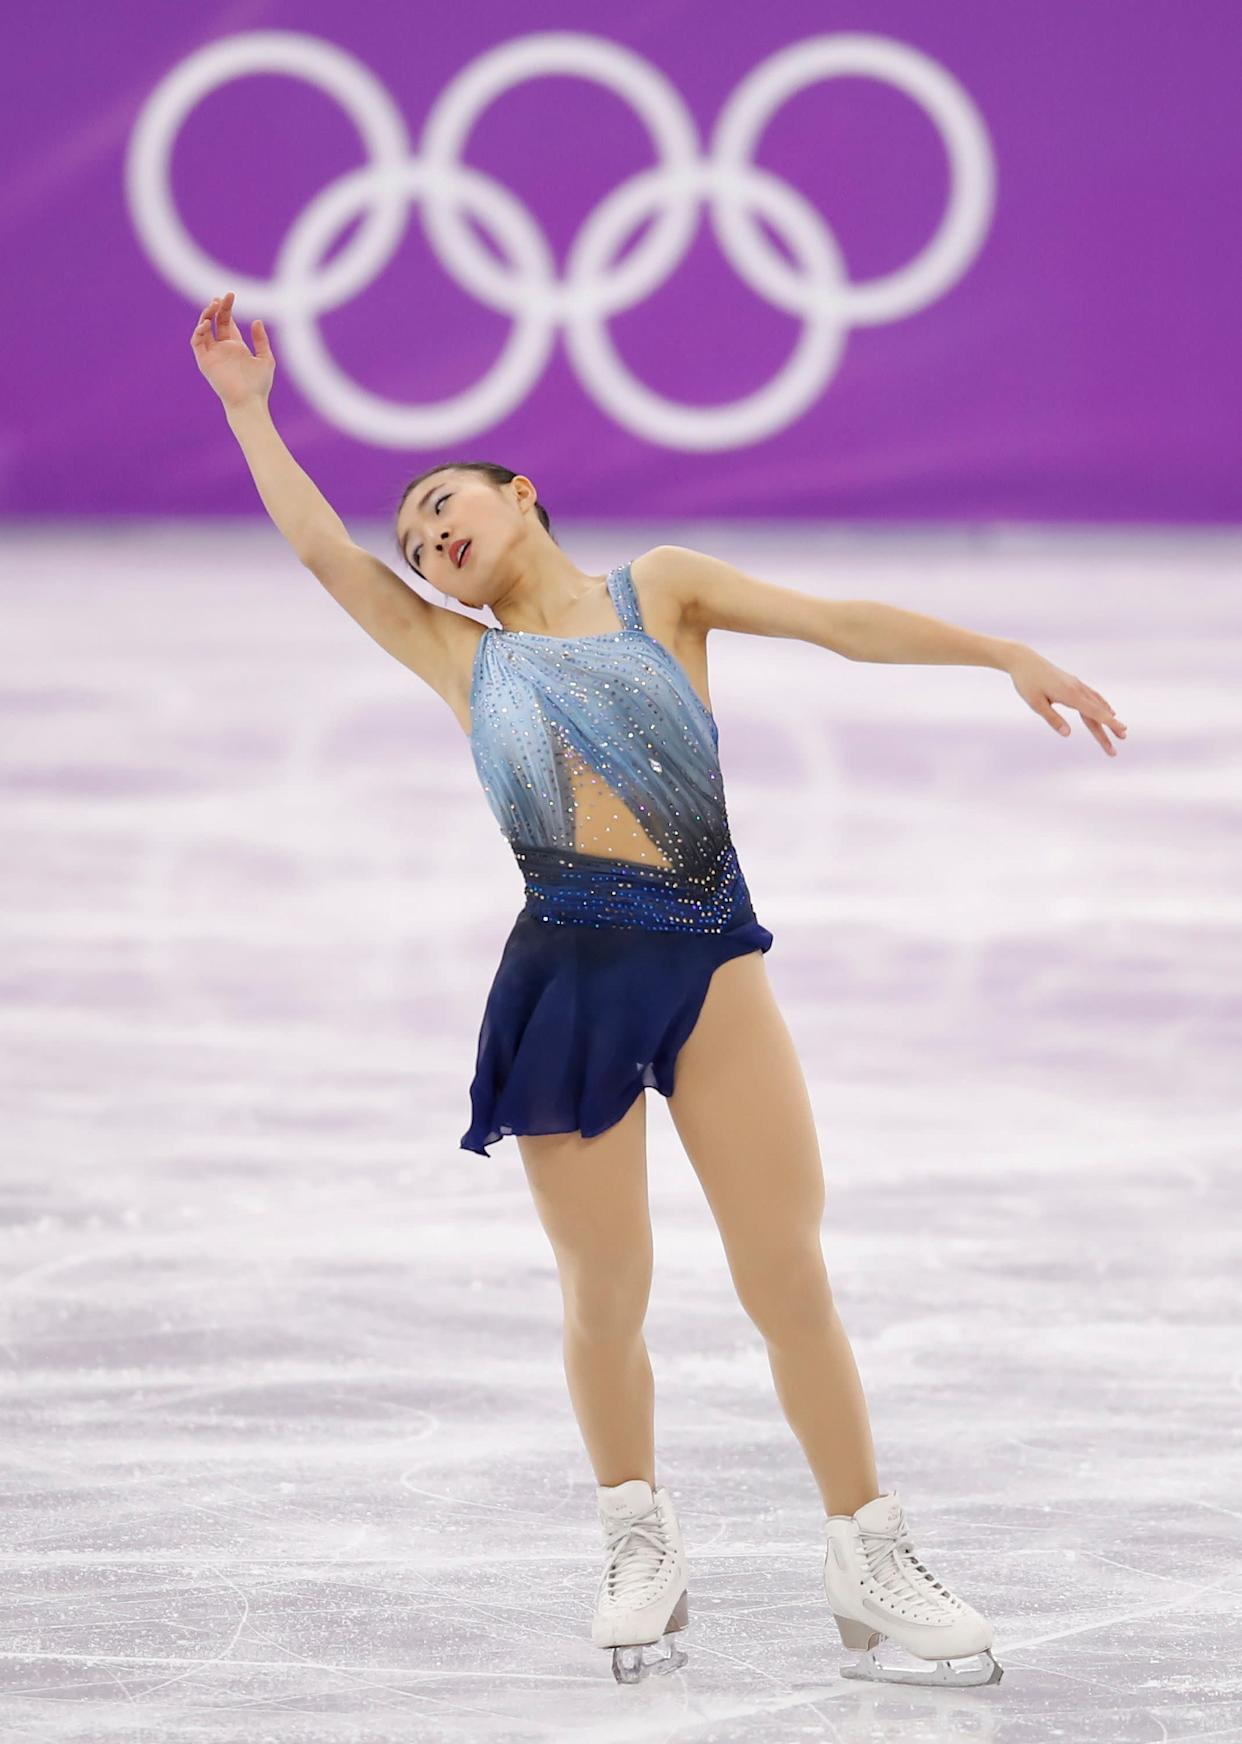 """Japan's Sakamoto wore this lovely blue costume for the ladies single short program earlier this week. It's giving us some <a href=""""https://www.vogue.com/fashion-shows/spring-2008-ready-to-wear/rodarte/slideshow/collection#35"""" rel=""""nofollow noopener"""" target=""""_blank"""" data-ylk=""""slk:Rodarte"""" class=""""link rapid-noclick-resp"""">Rodarte</a>&nbsp;<a href=""""https://www.vogue.com/fashion-shows/fall-2008-ready-to-wear/rodarte/slideshow/collection#11"""" rel=""""nofollow noopener"""" target=""""_blank"""" data-ylk=""""slk:vibes"""" class=""""link rapid-noclick-resp"""">vibes</a>, and we're here for it."""